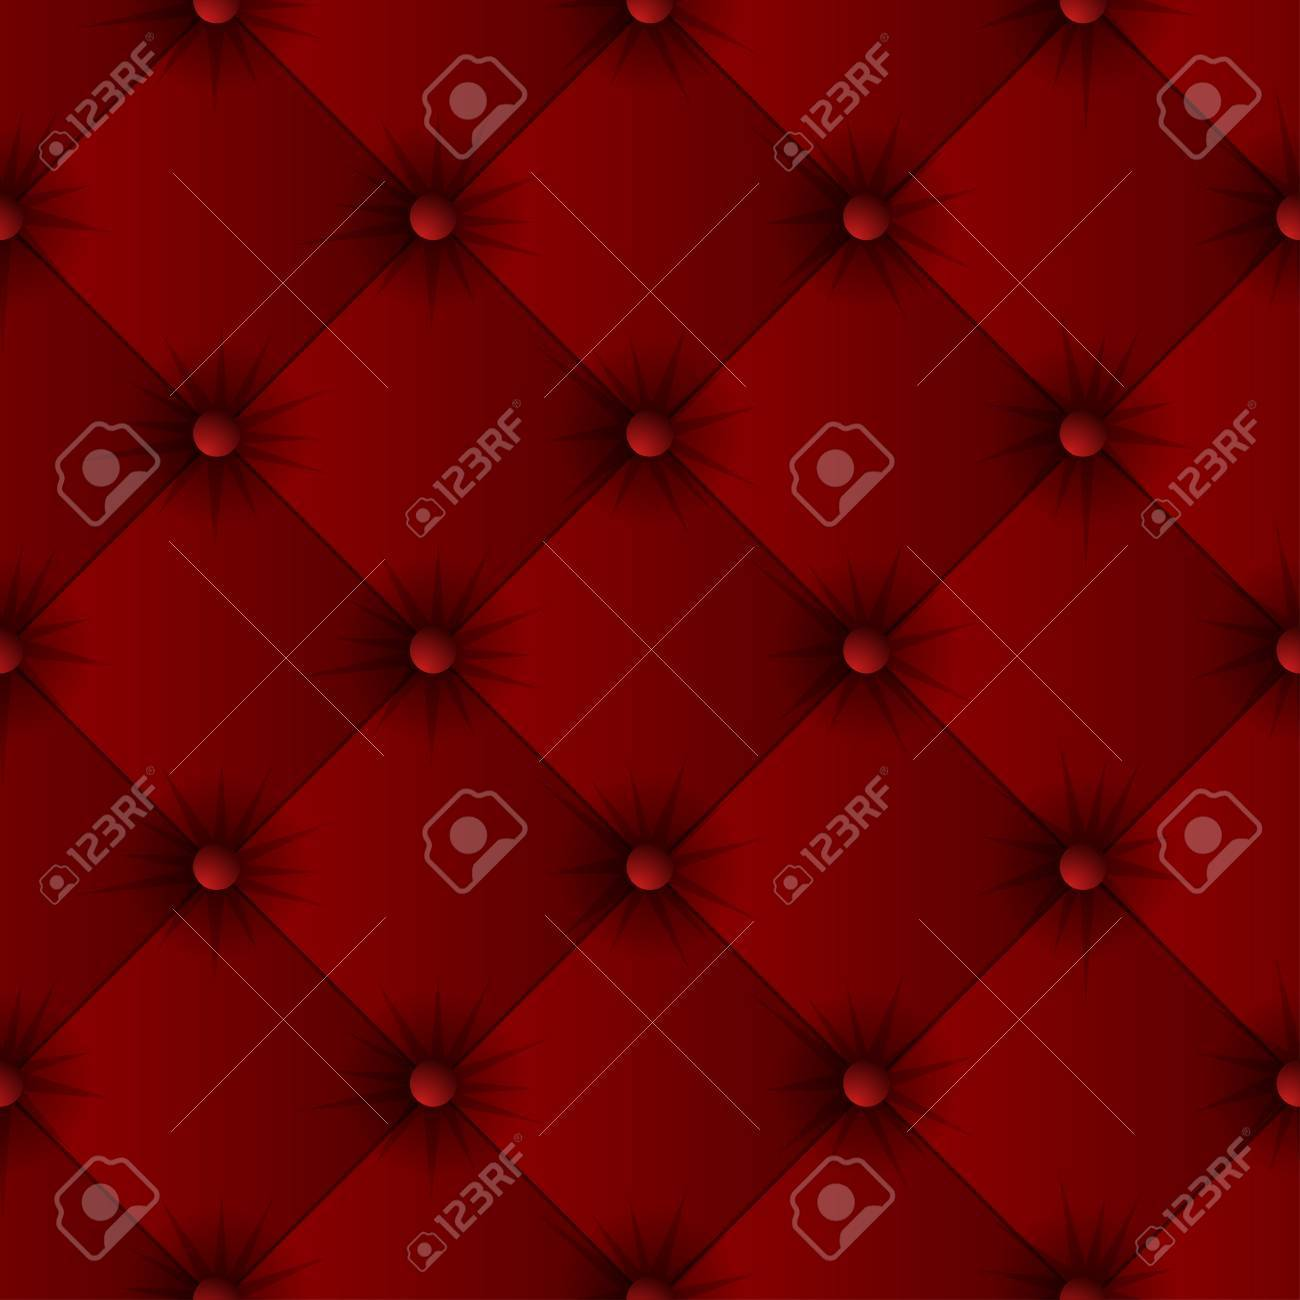 Sofa Texture Vector Red Sofa Texture Seamless Pattern Easy Editable Background Color